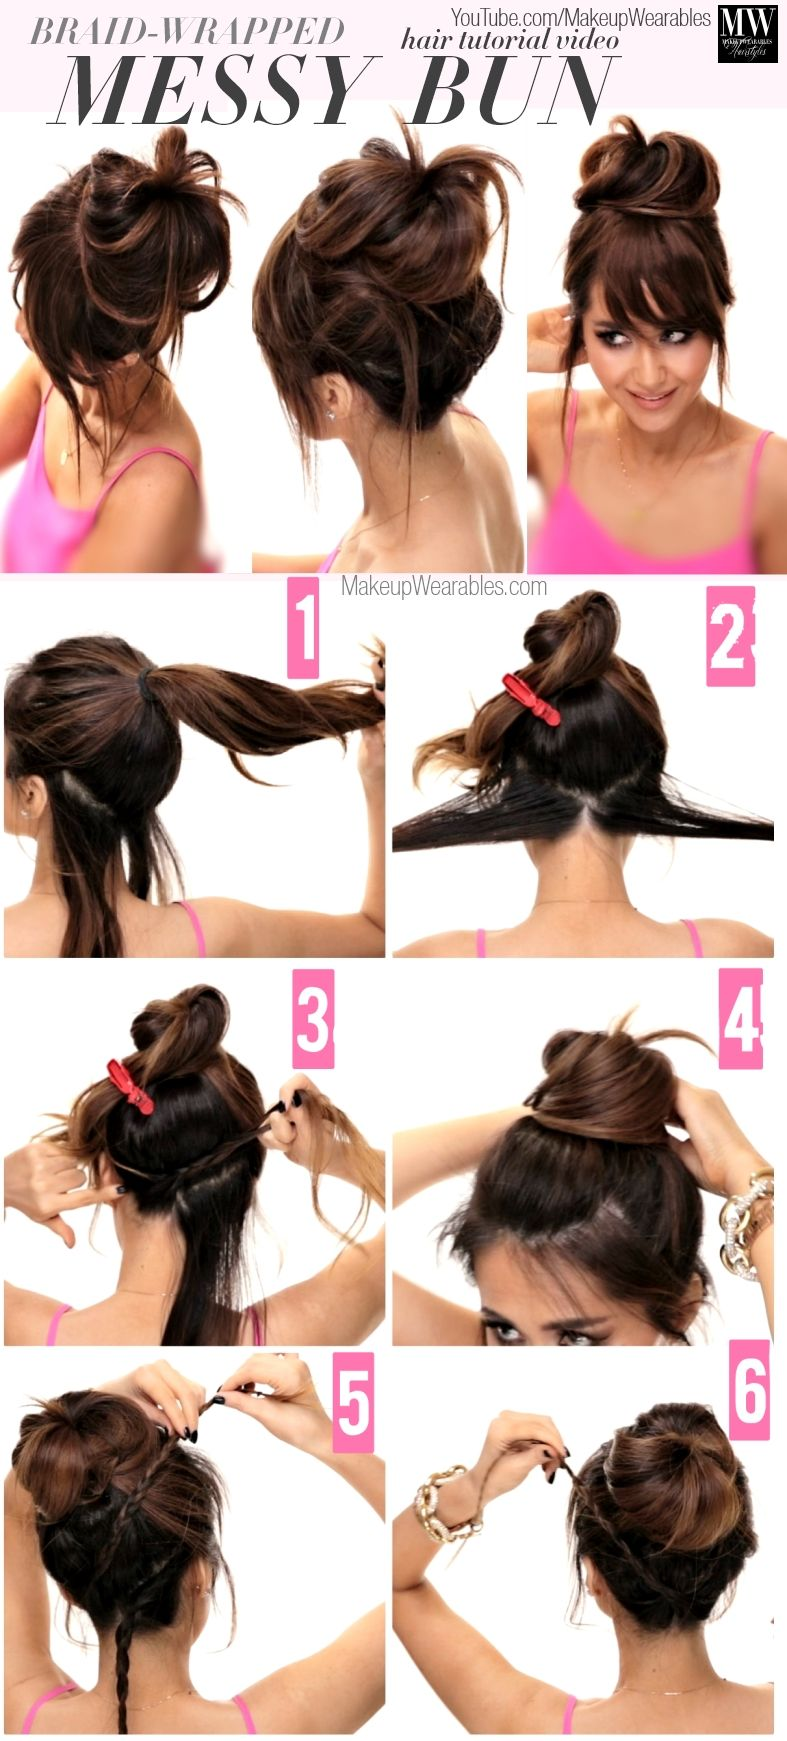 4 Lazy Girl's Easy Hairstyles | How to Cute Braids + Messy Buns